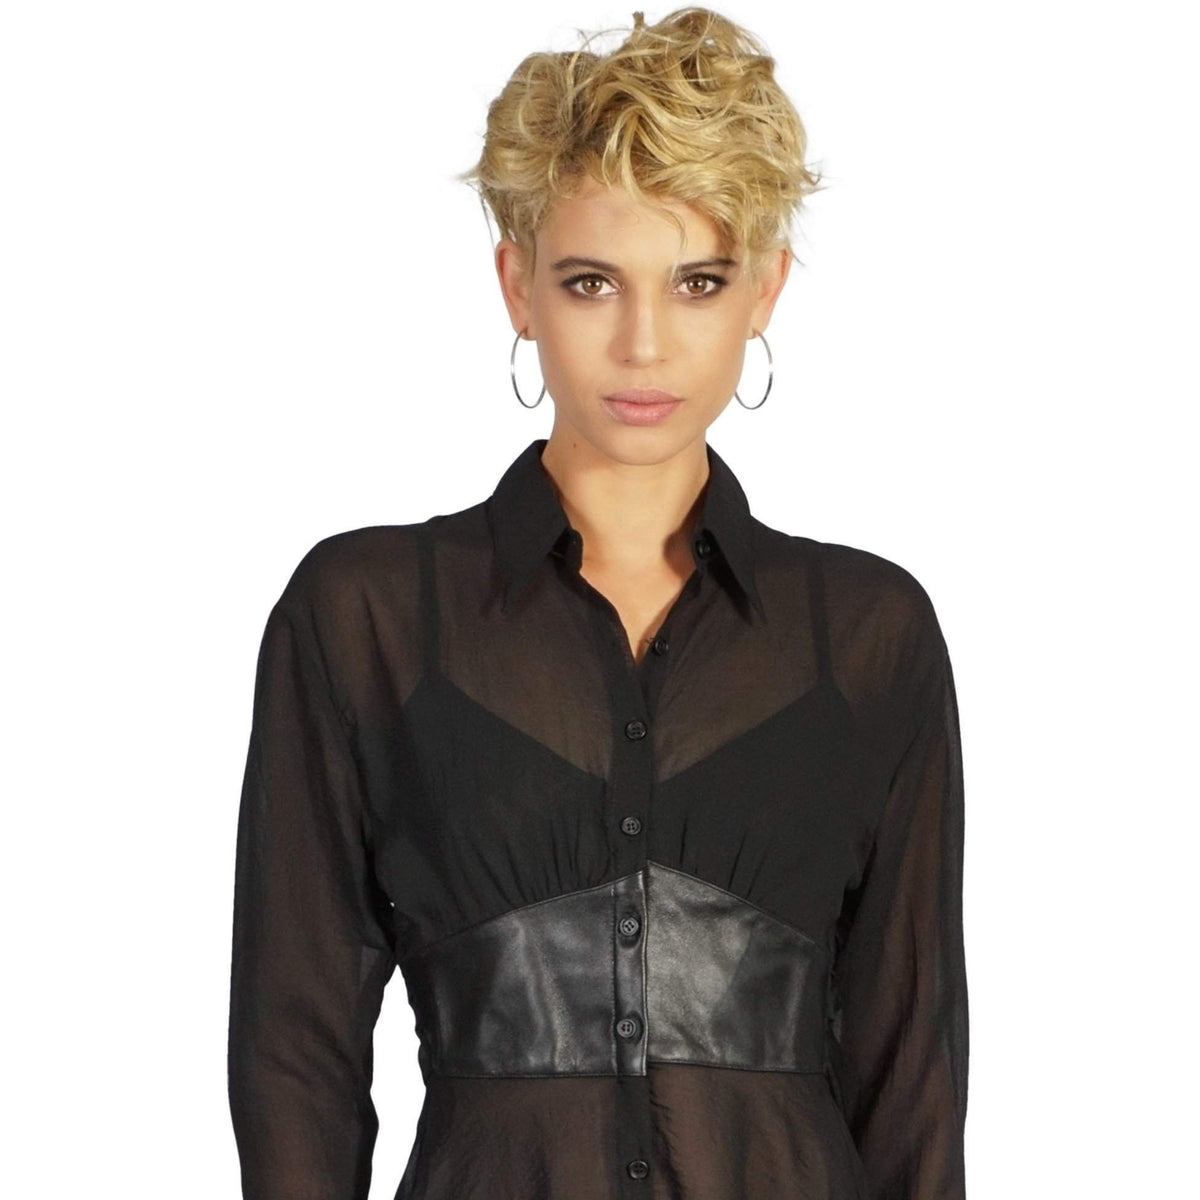 Widow Black Ice Chiffon & Leather Button Front Top-Salemonster